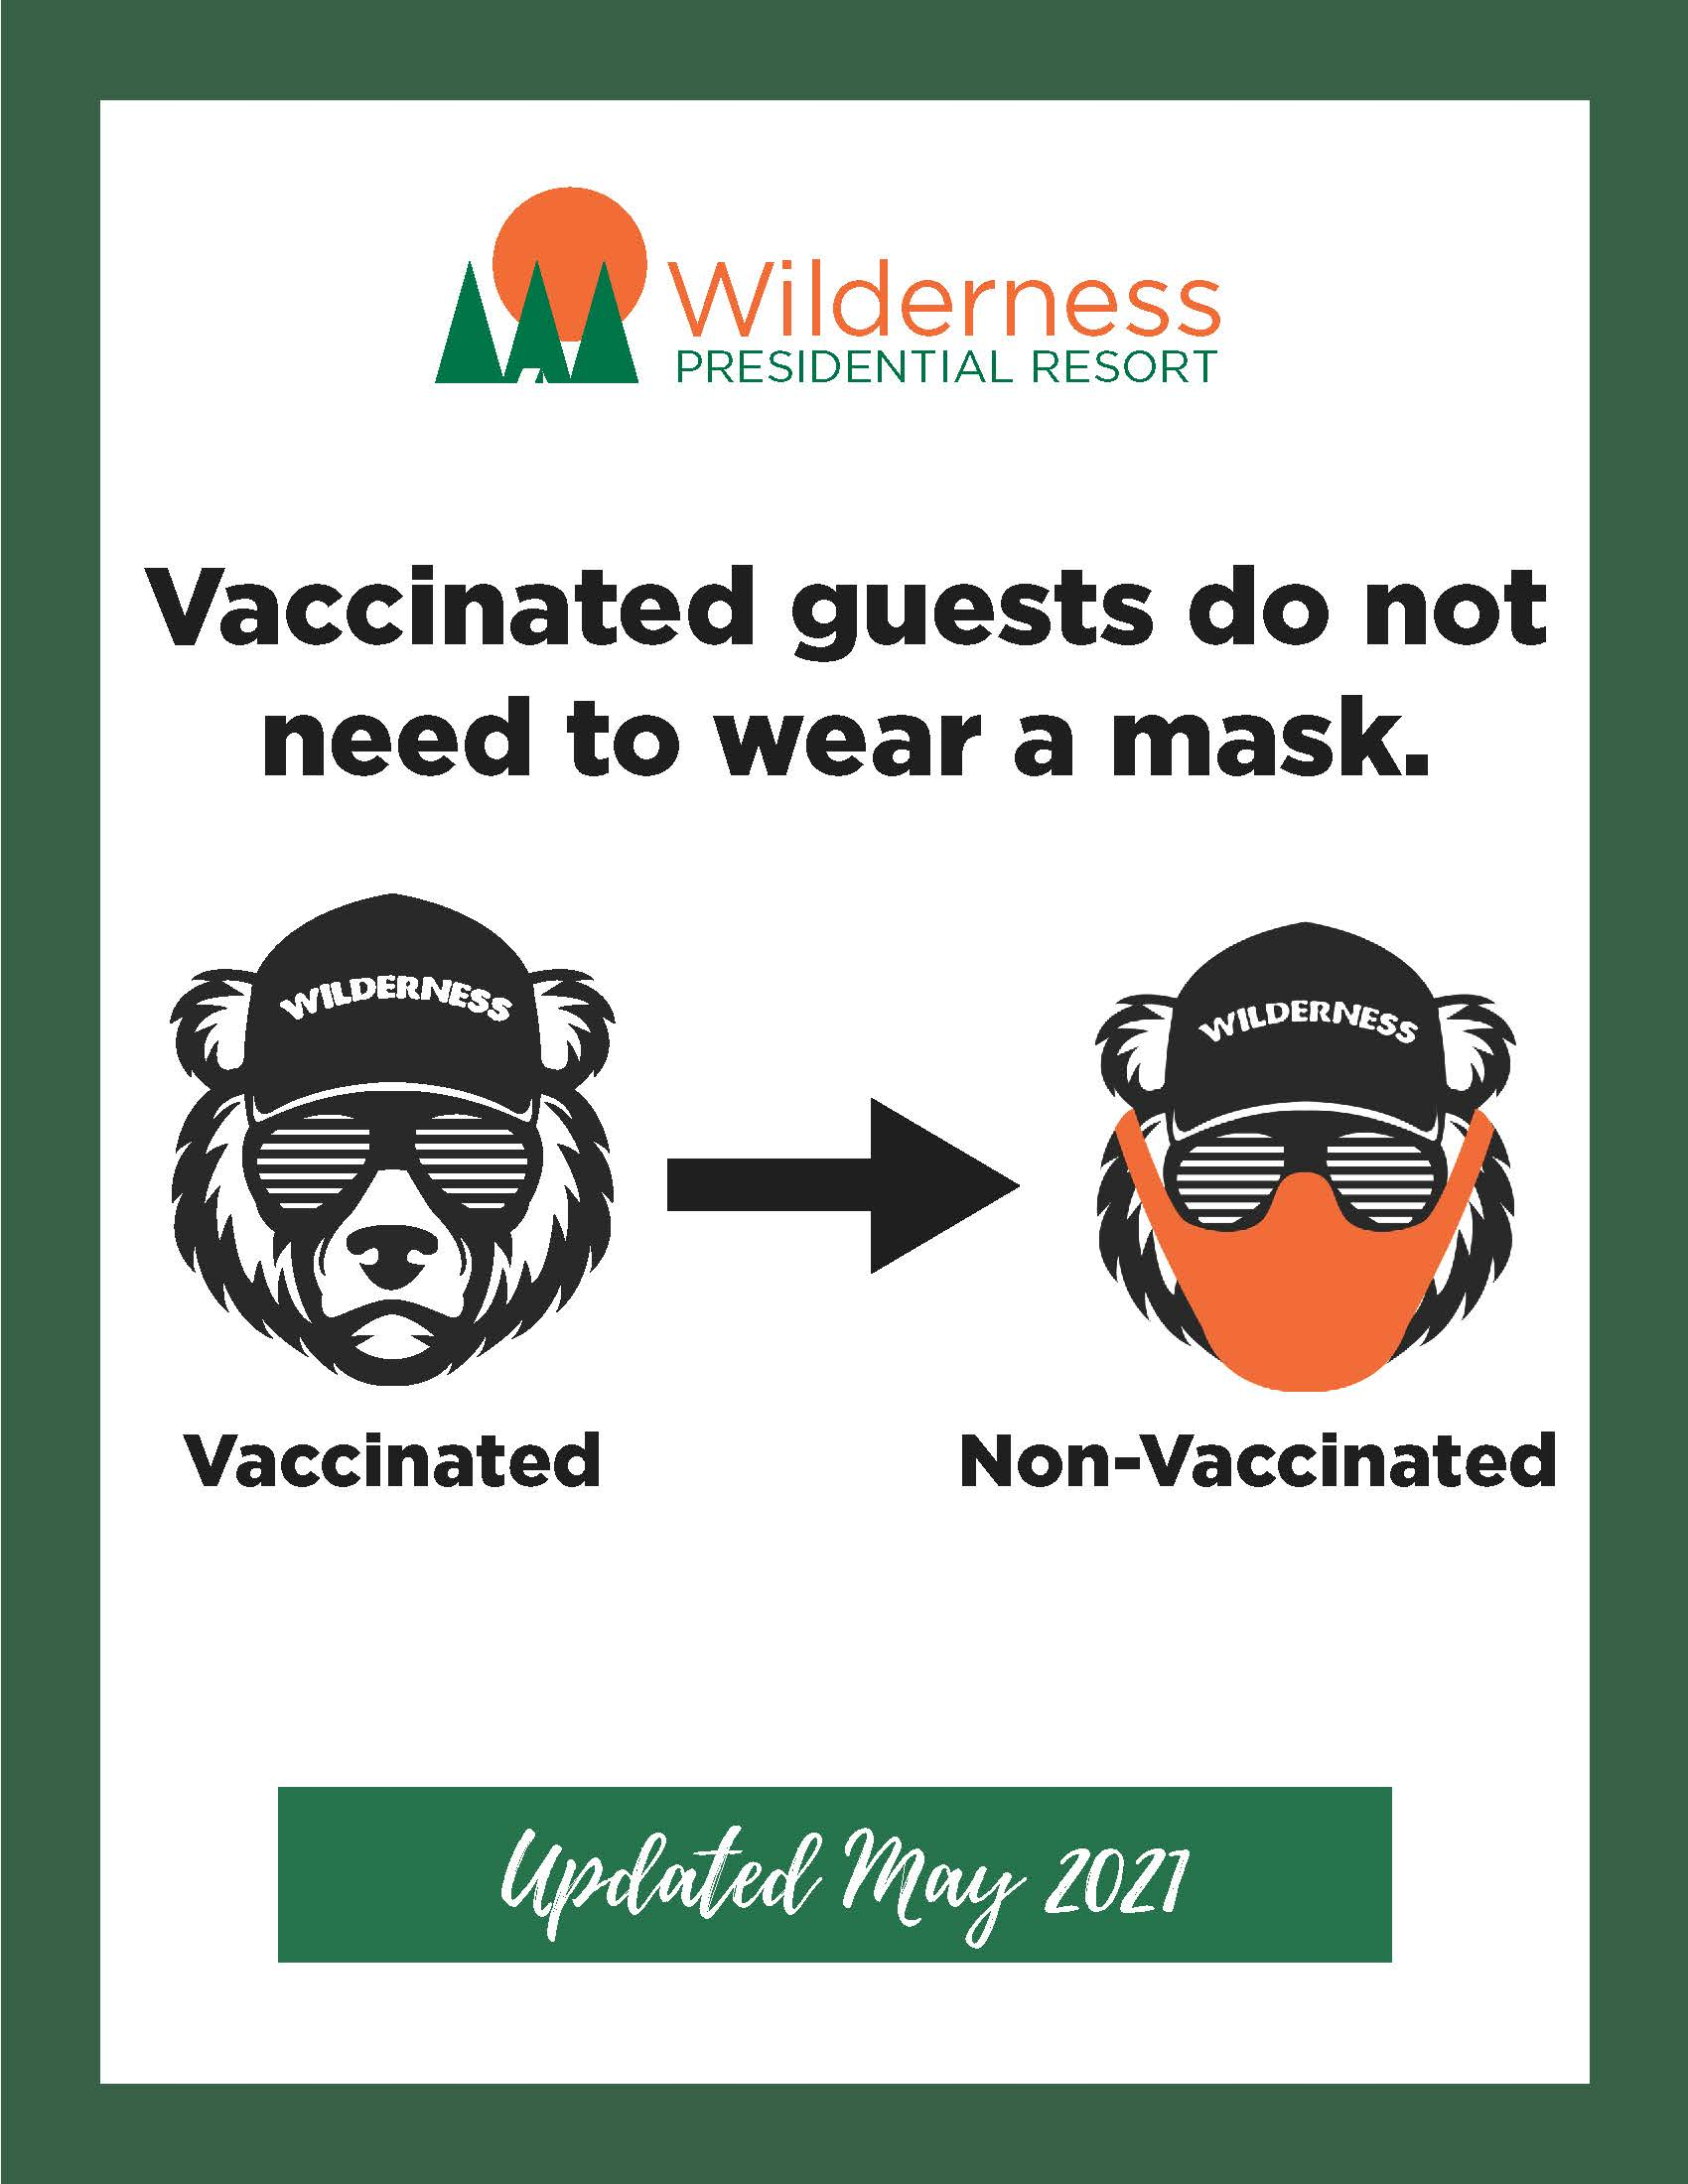 No mask required if vaccinated.